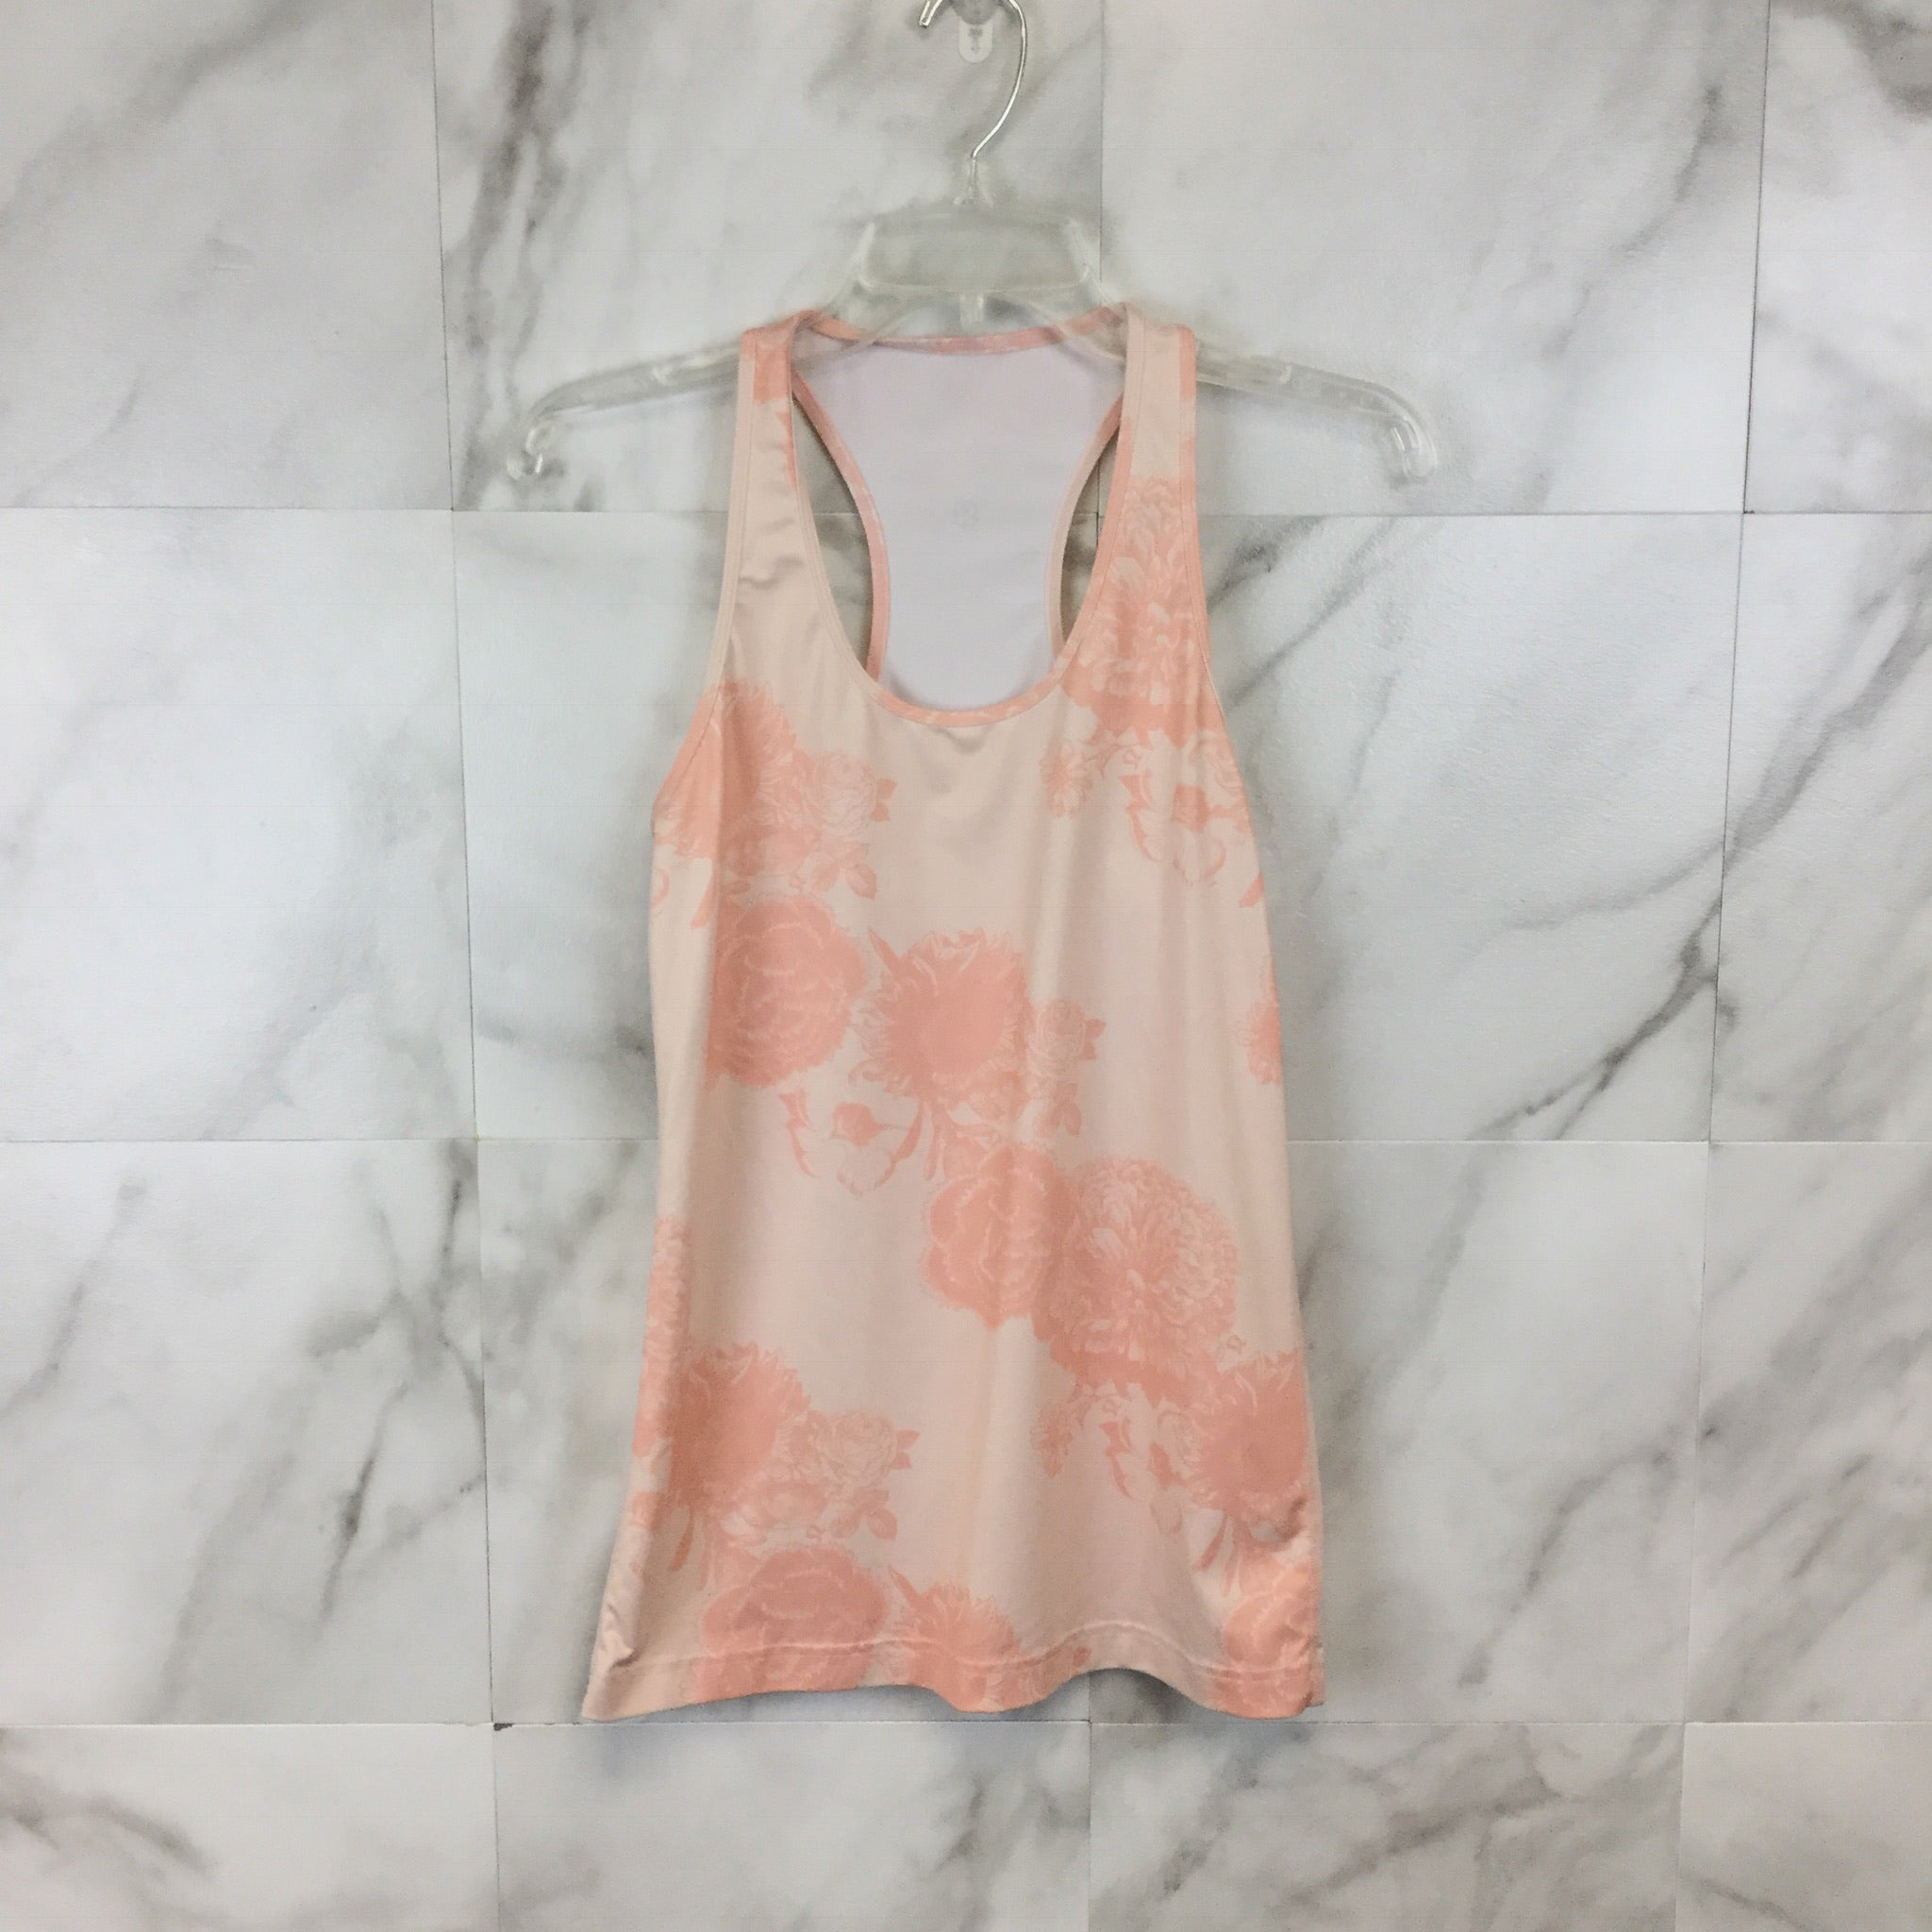 Lululemon Floral Racerback Tank size Small